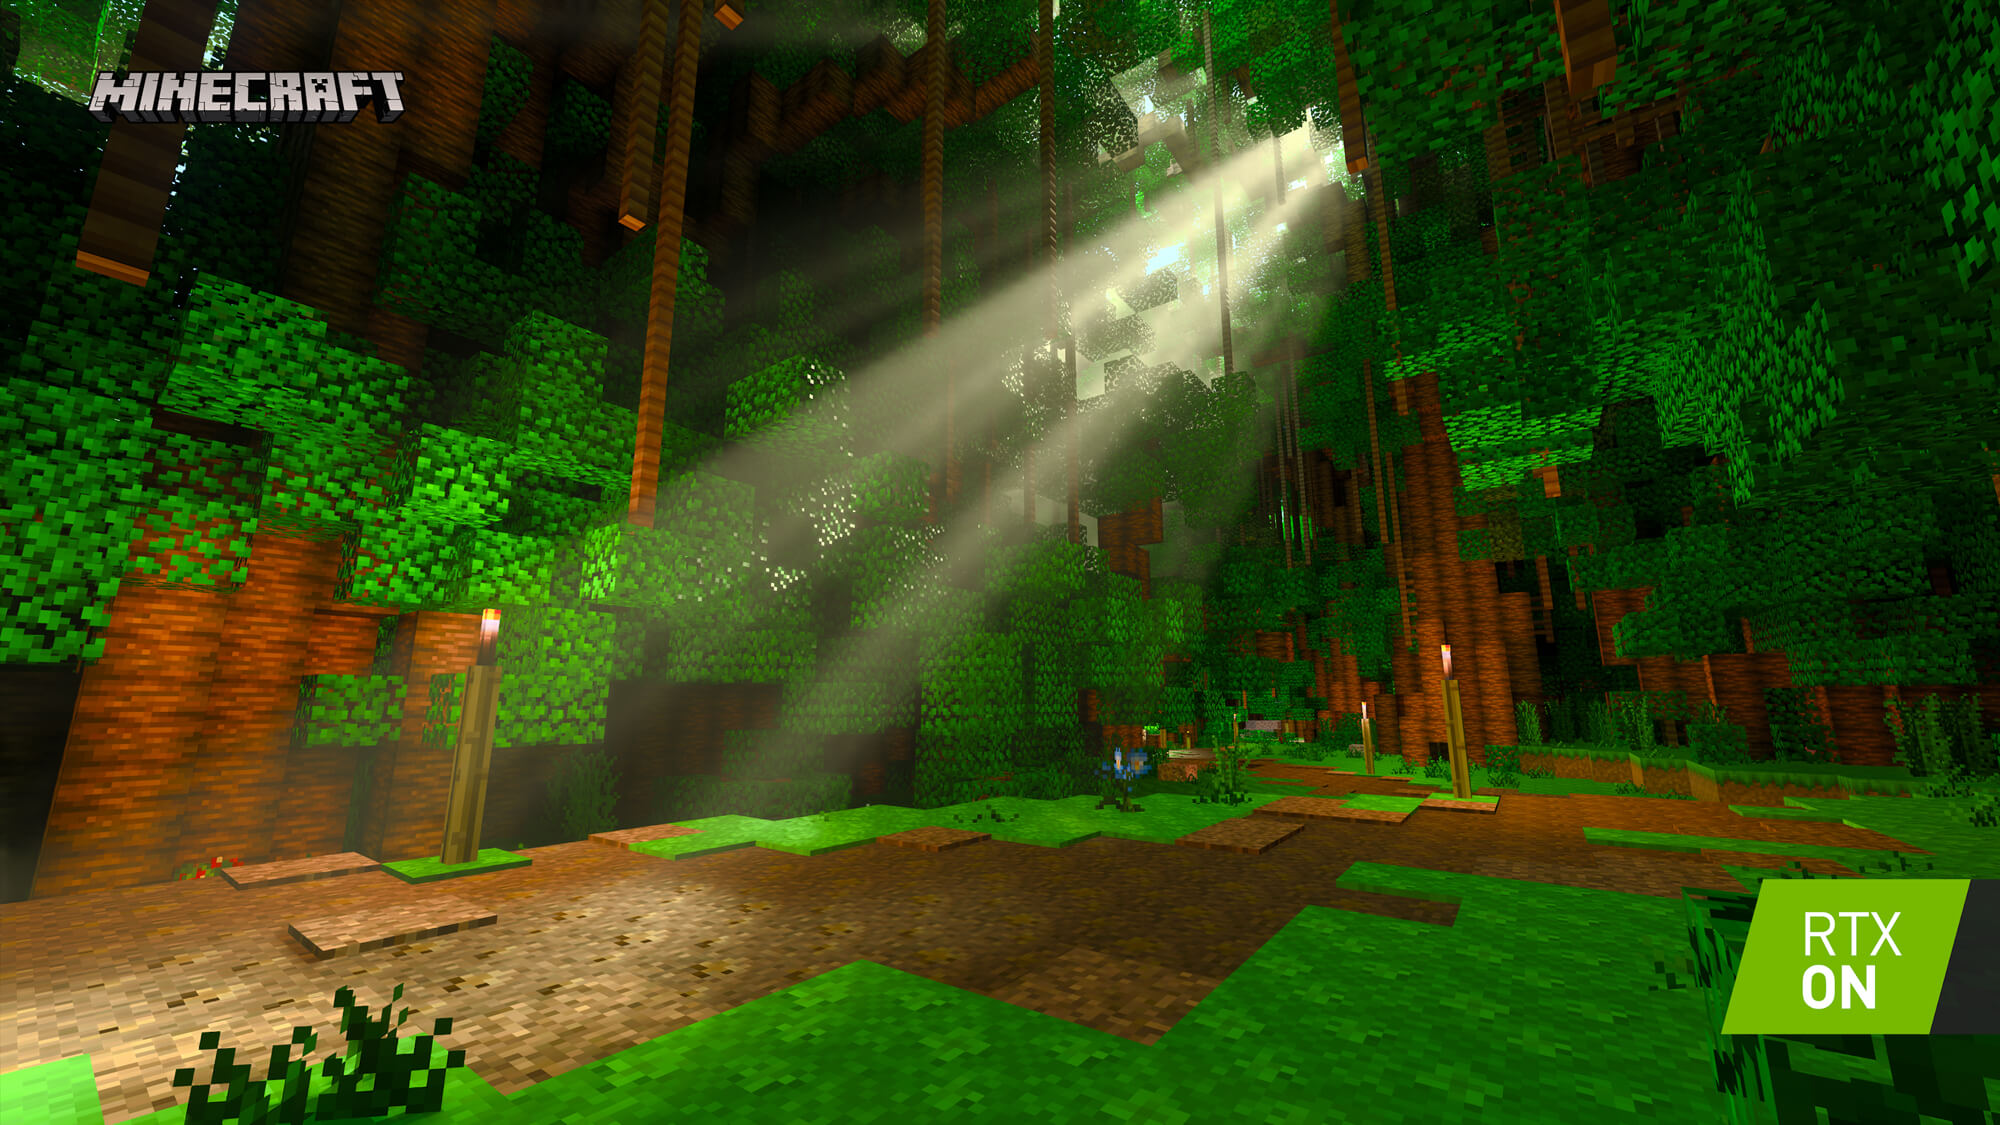 Minecraft's RTX makeover arrives in beta later this week